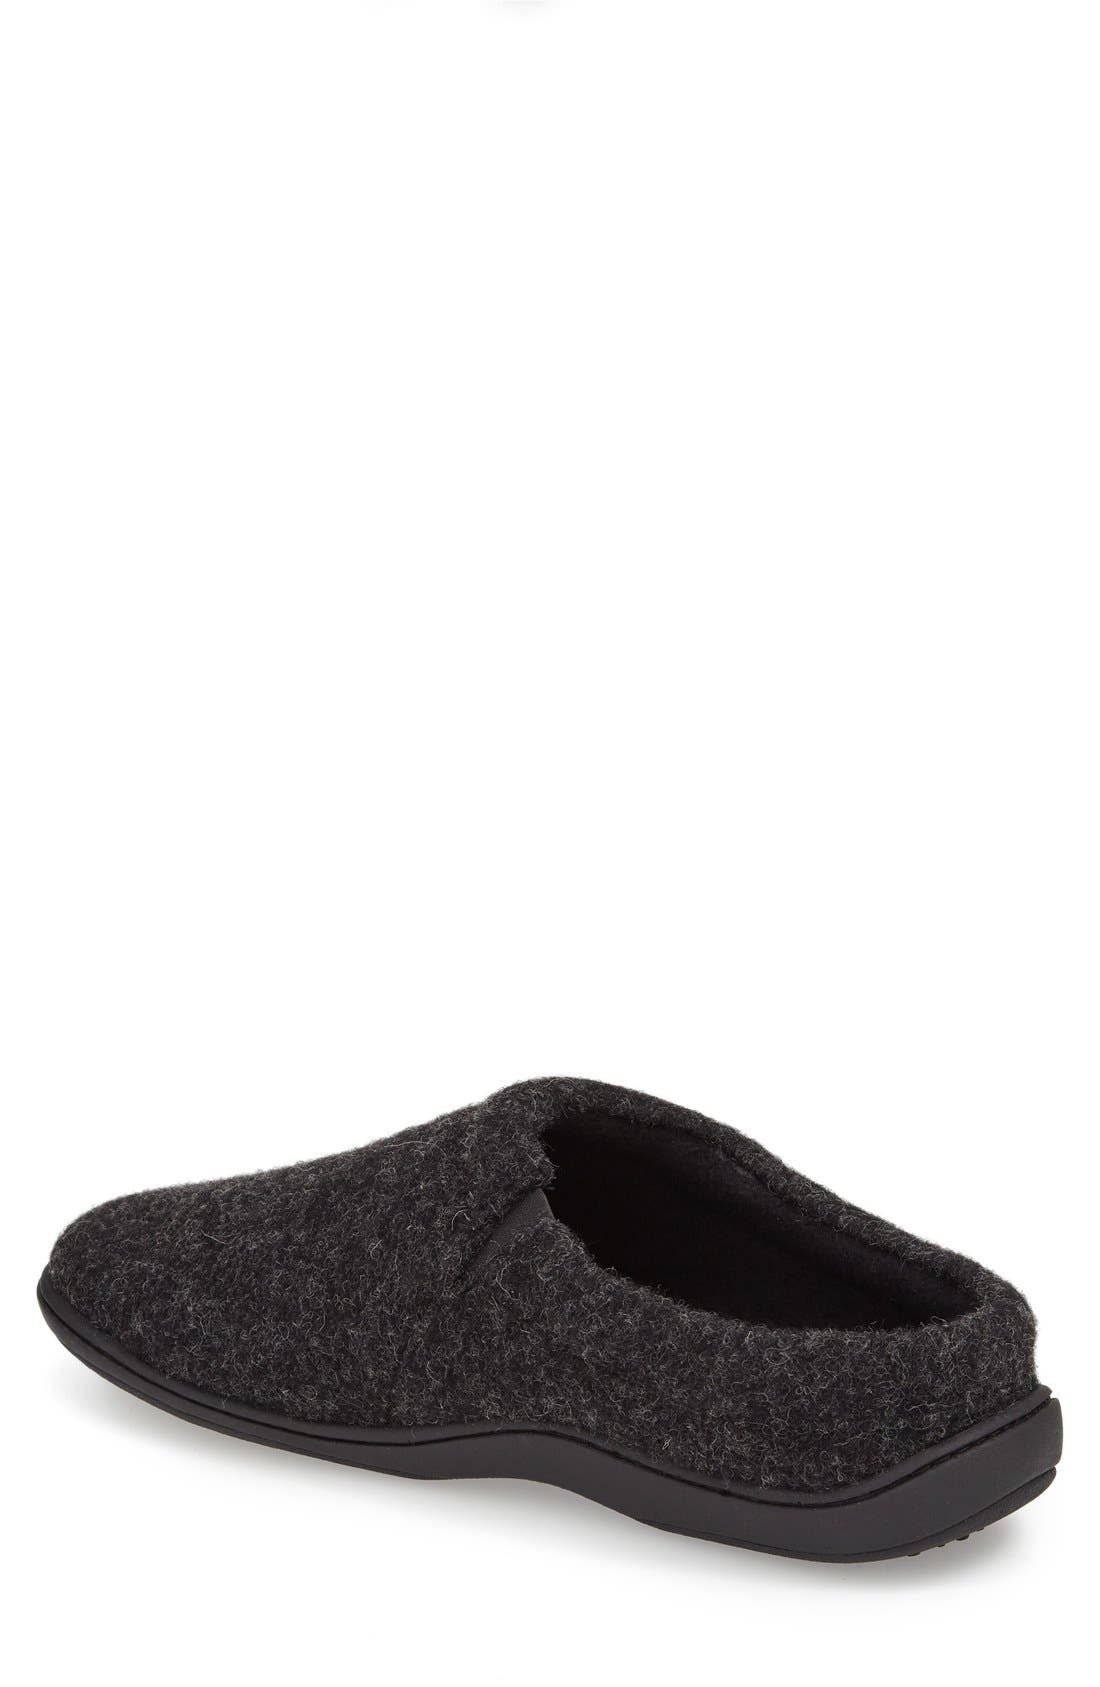 'Digby' Slipper,                             Alternate thumbnail 12, color,